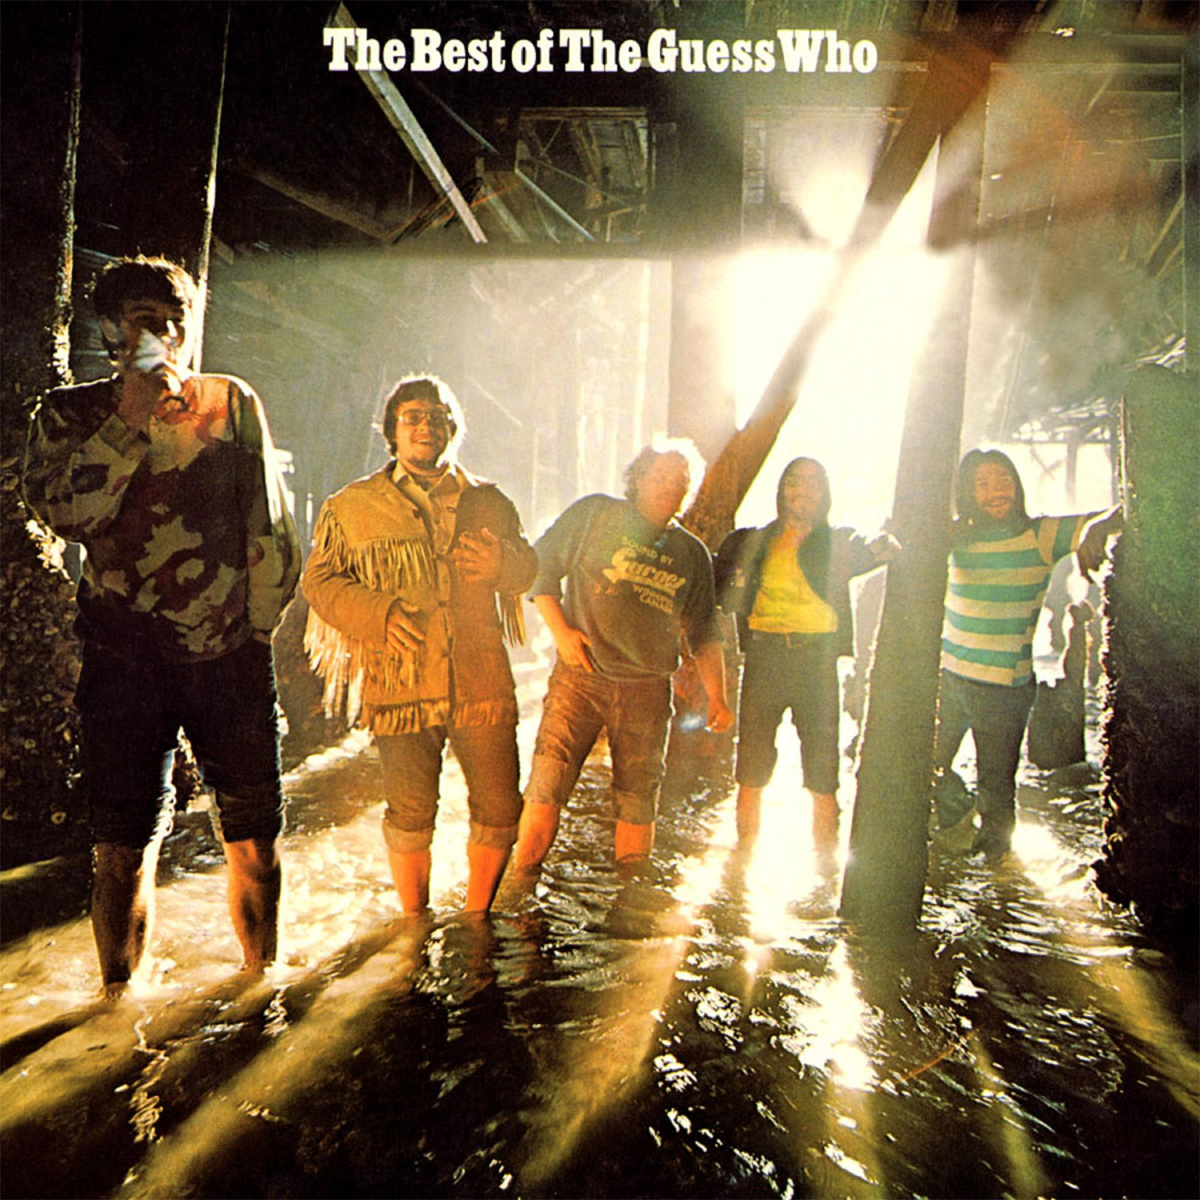 The Guess Who The Best of The Guess Who 180g LP (Translucent Gold Vinyl)